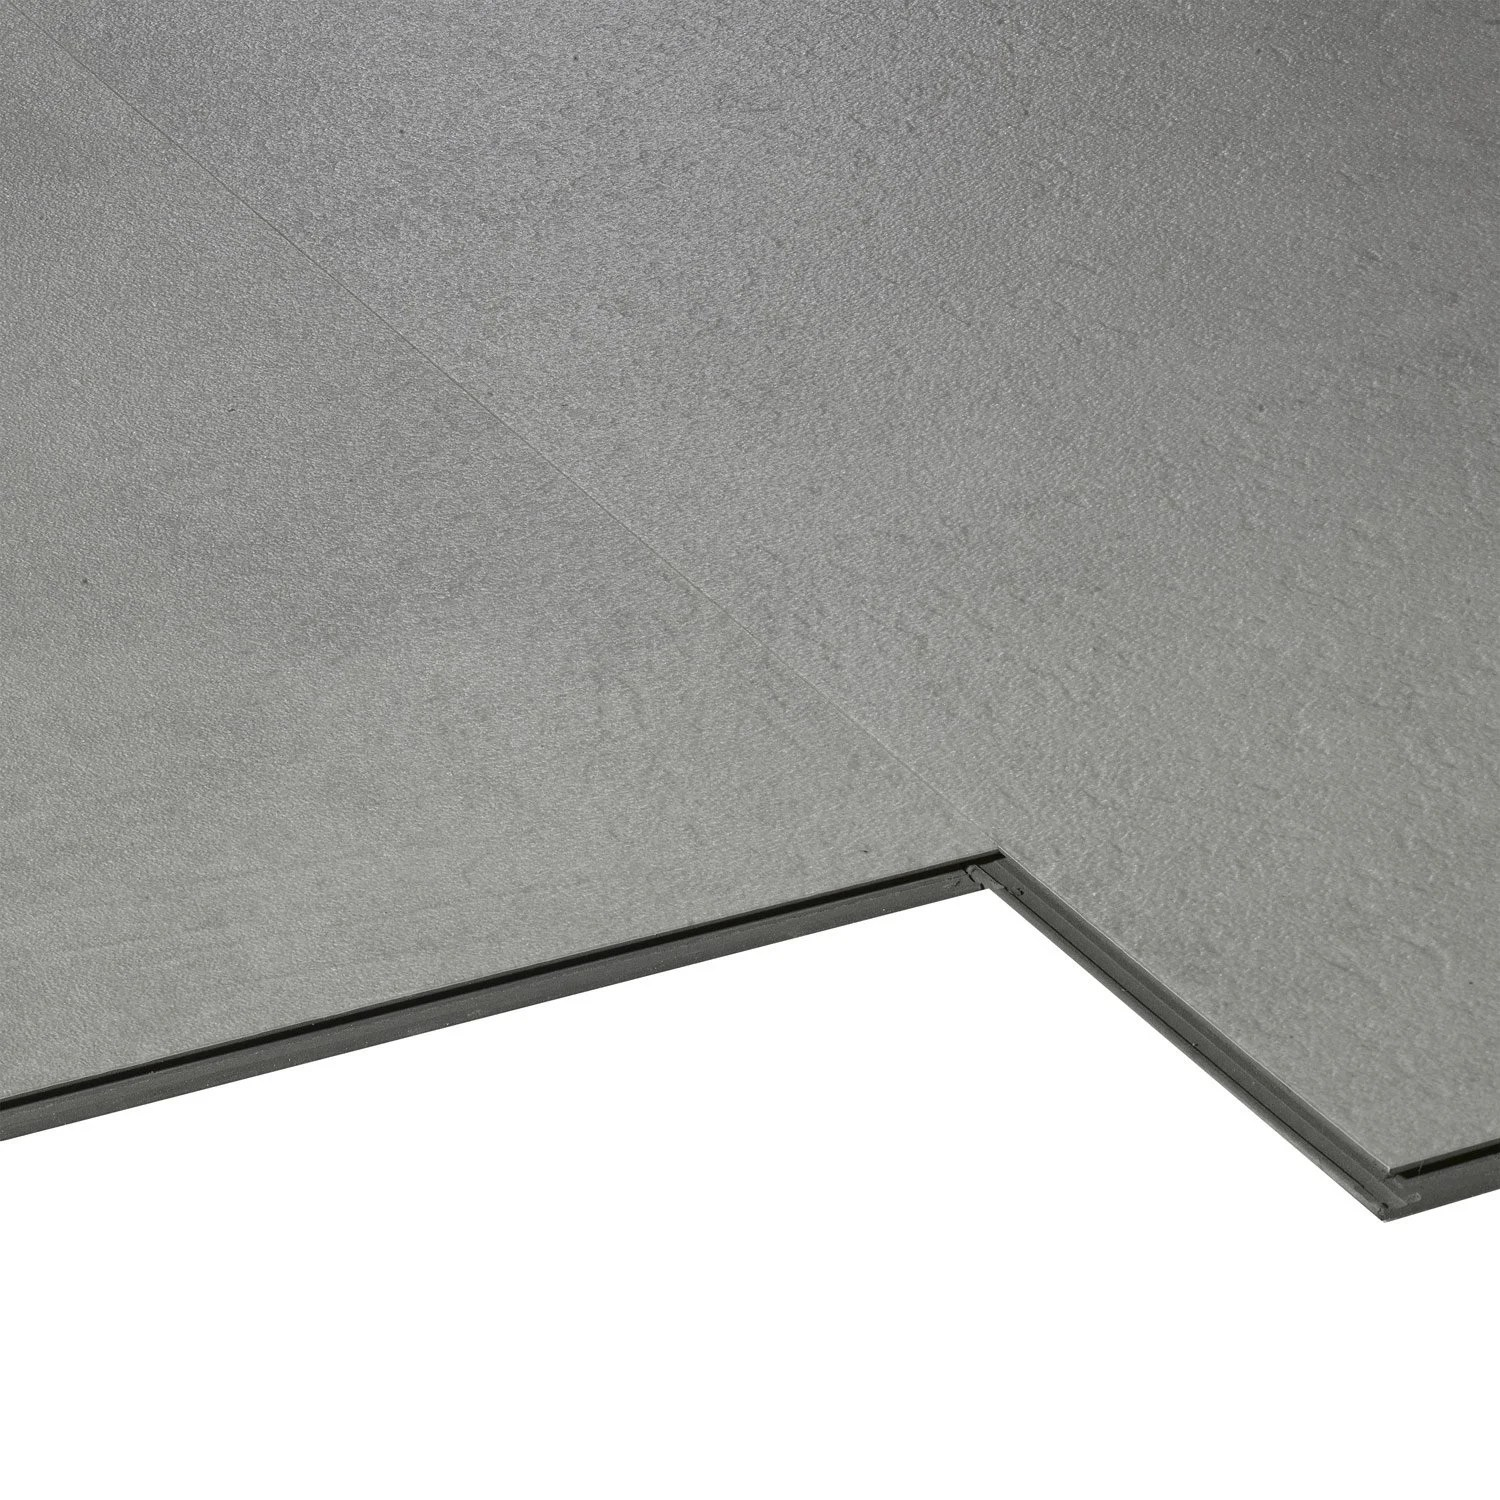 Dalle Pvc Clipsable Exterieur Dalle Pvc Clipsable Gris Clair Styling Aero City